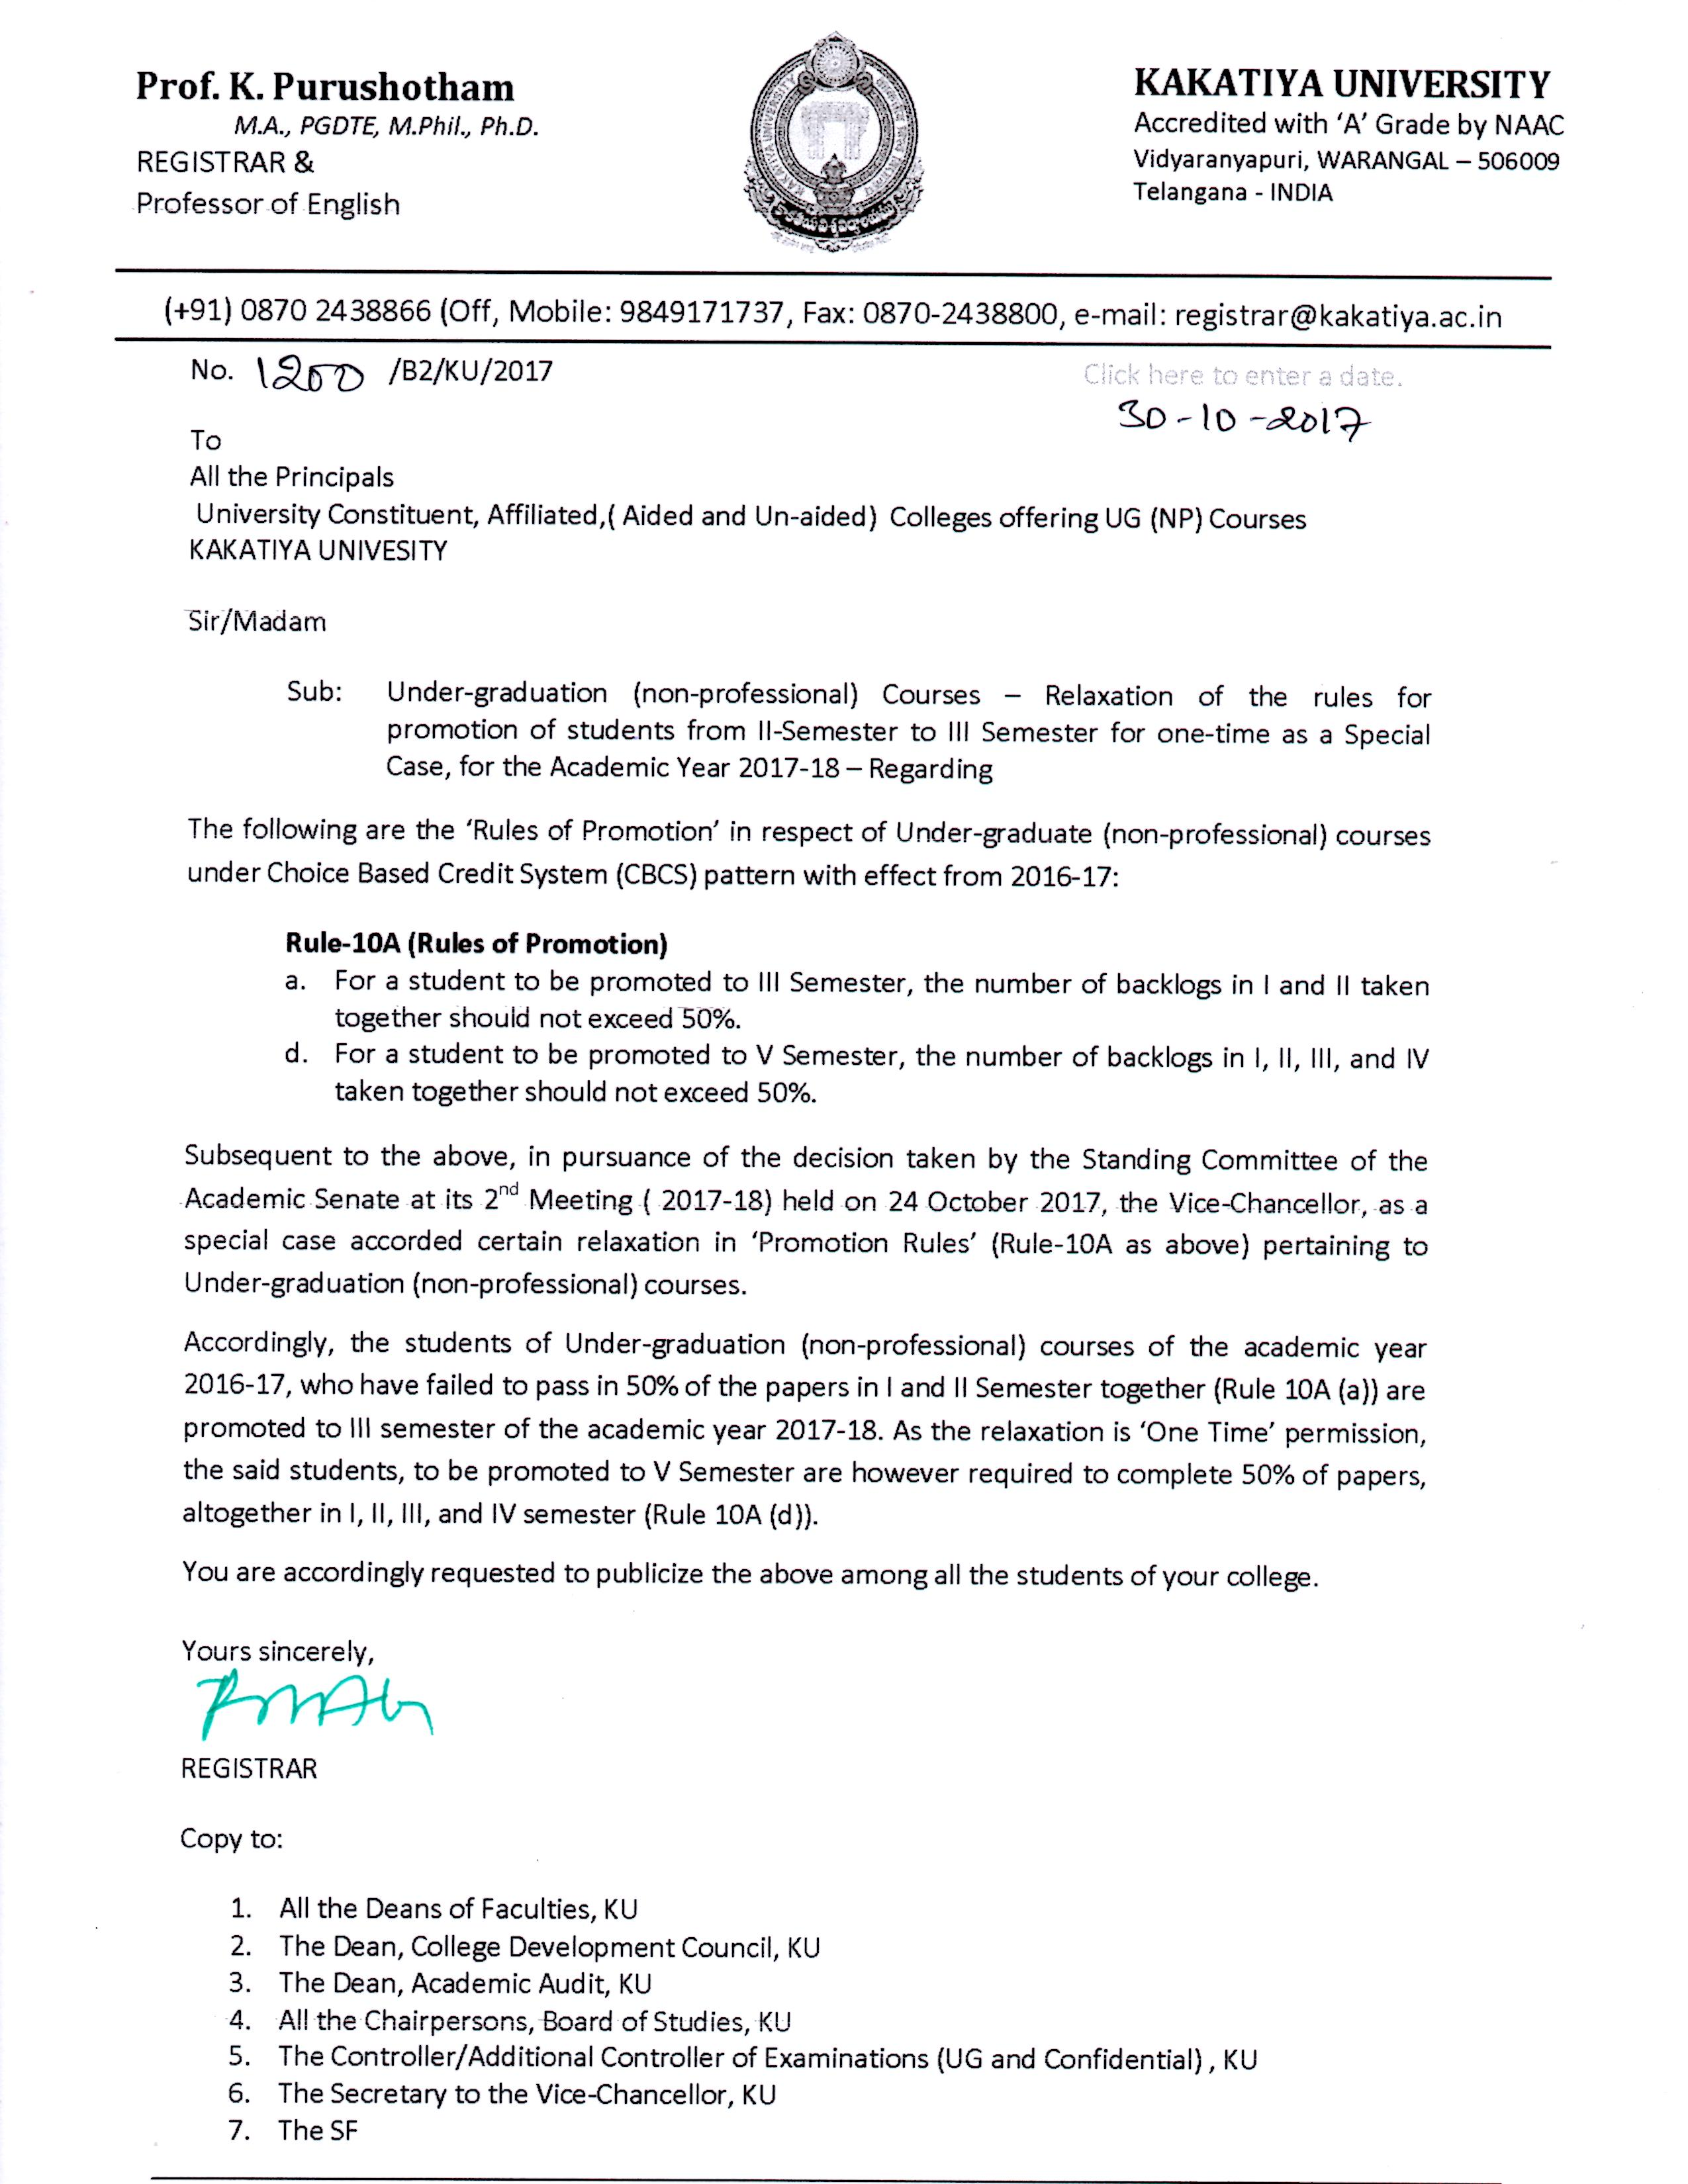 Rules Courses non-professional Case Academic Year Kakathiya Ug Of Iii The For As - Relaxion Special 2017-18 From Ii Promotion One To Time University Thesis123thesis123 Semester A Students